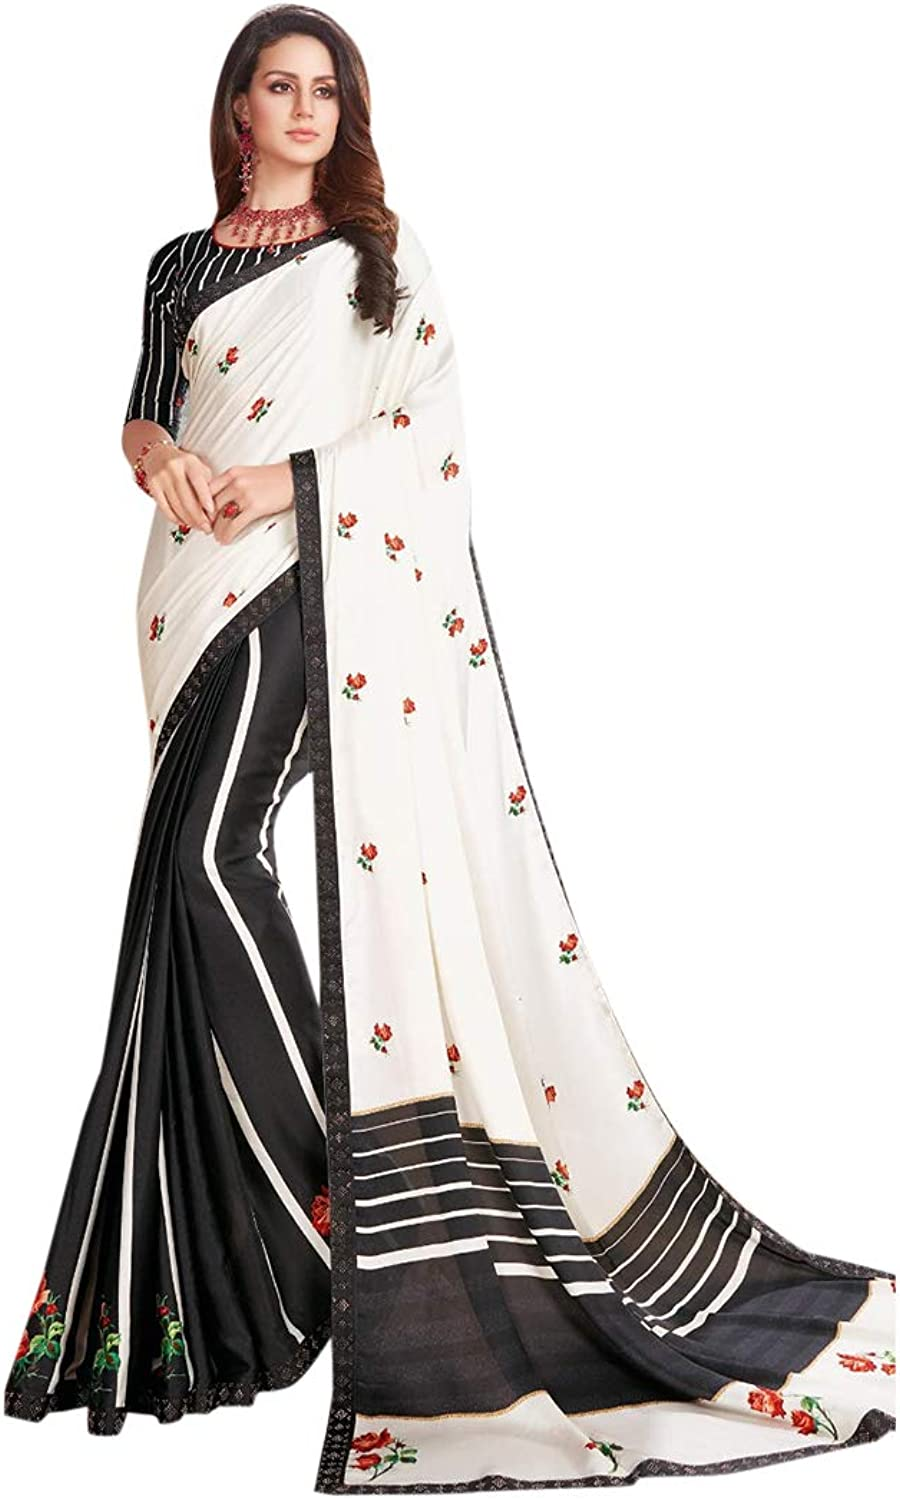 Black White Indian Ethnic Swarovski work Sari with Blouse piece Designer Saree for Women Party 7768